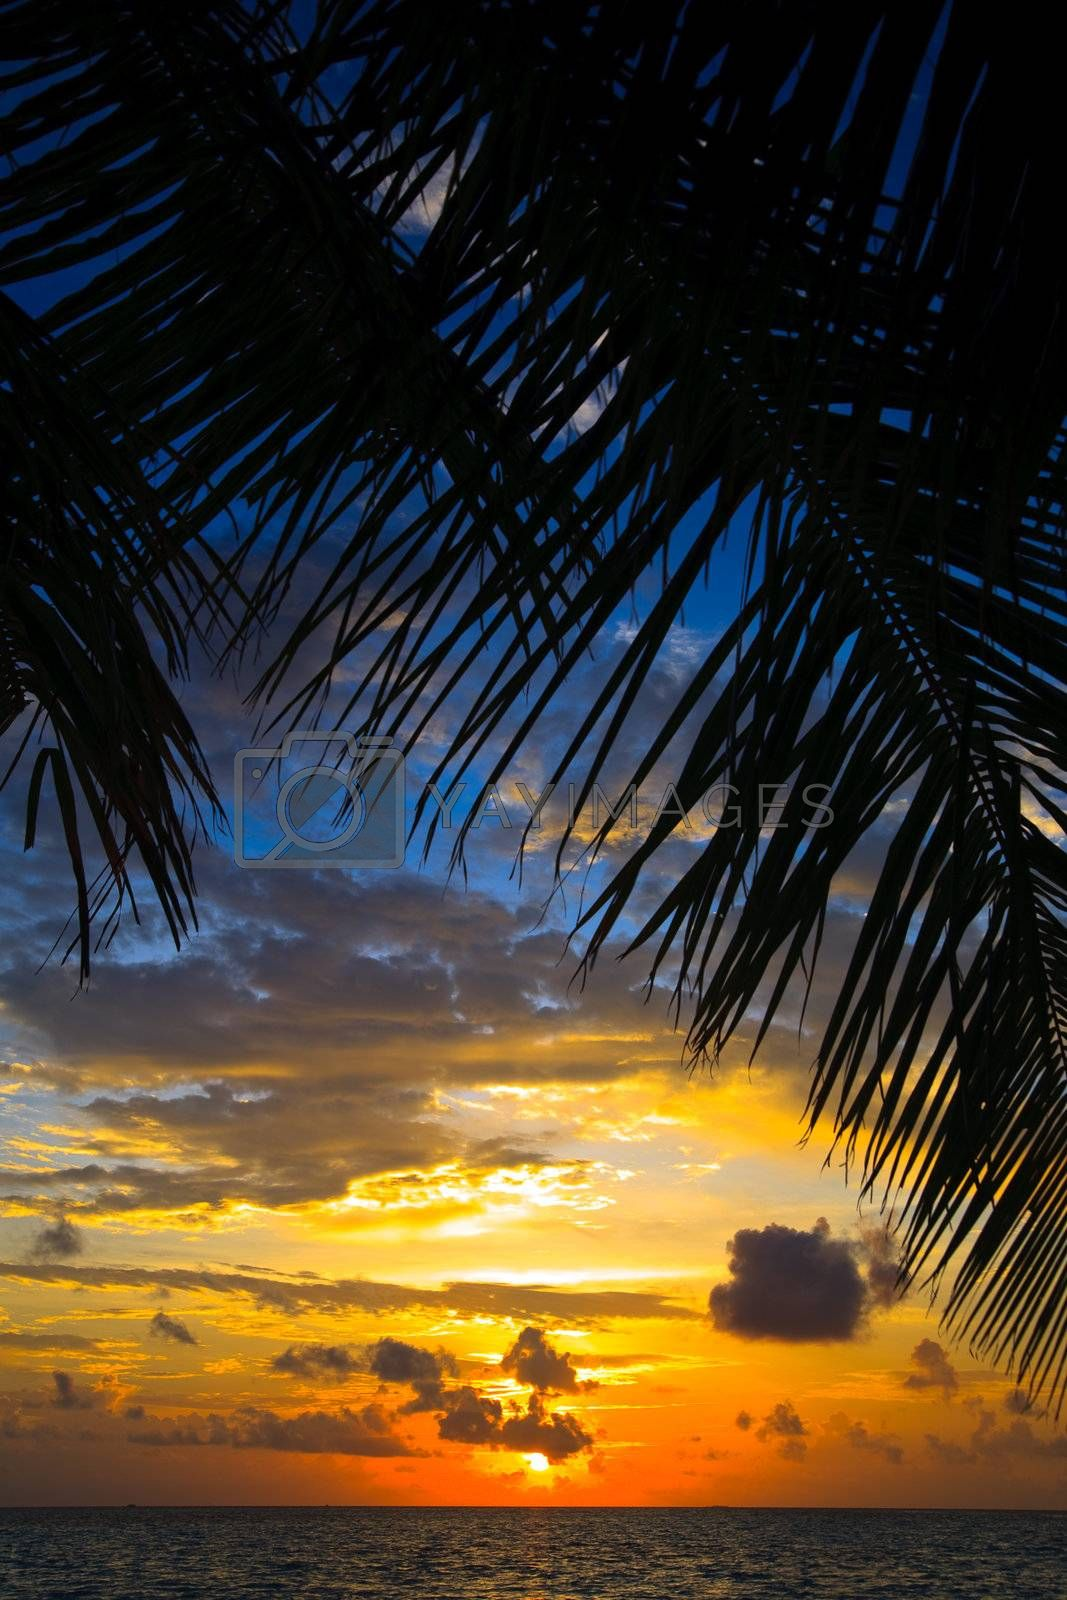 Maldivian Sunset image with nice color